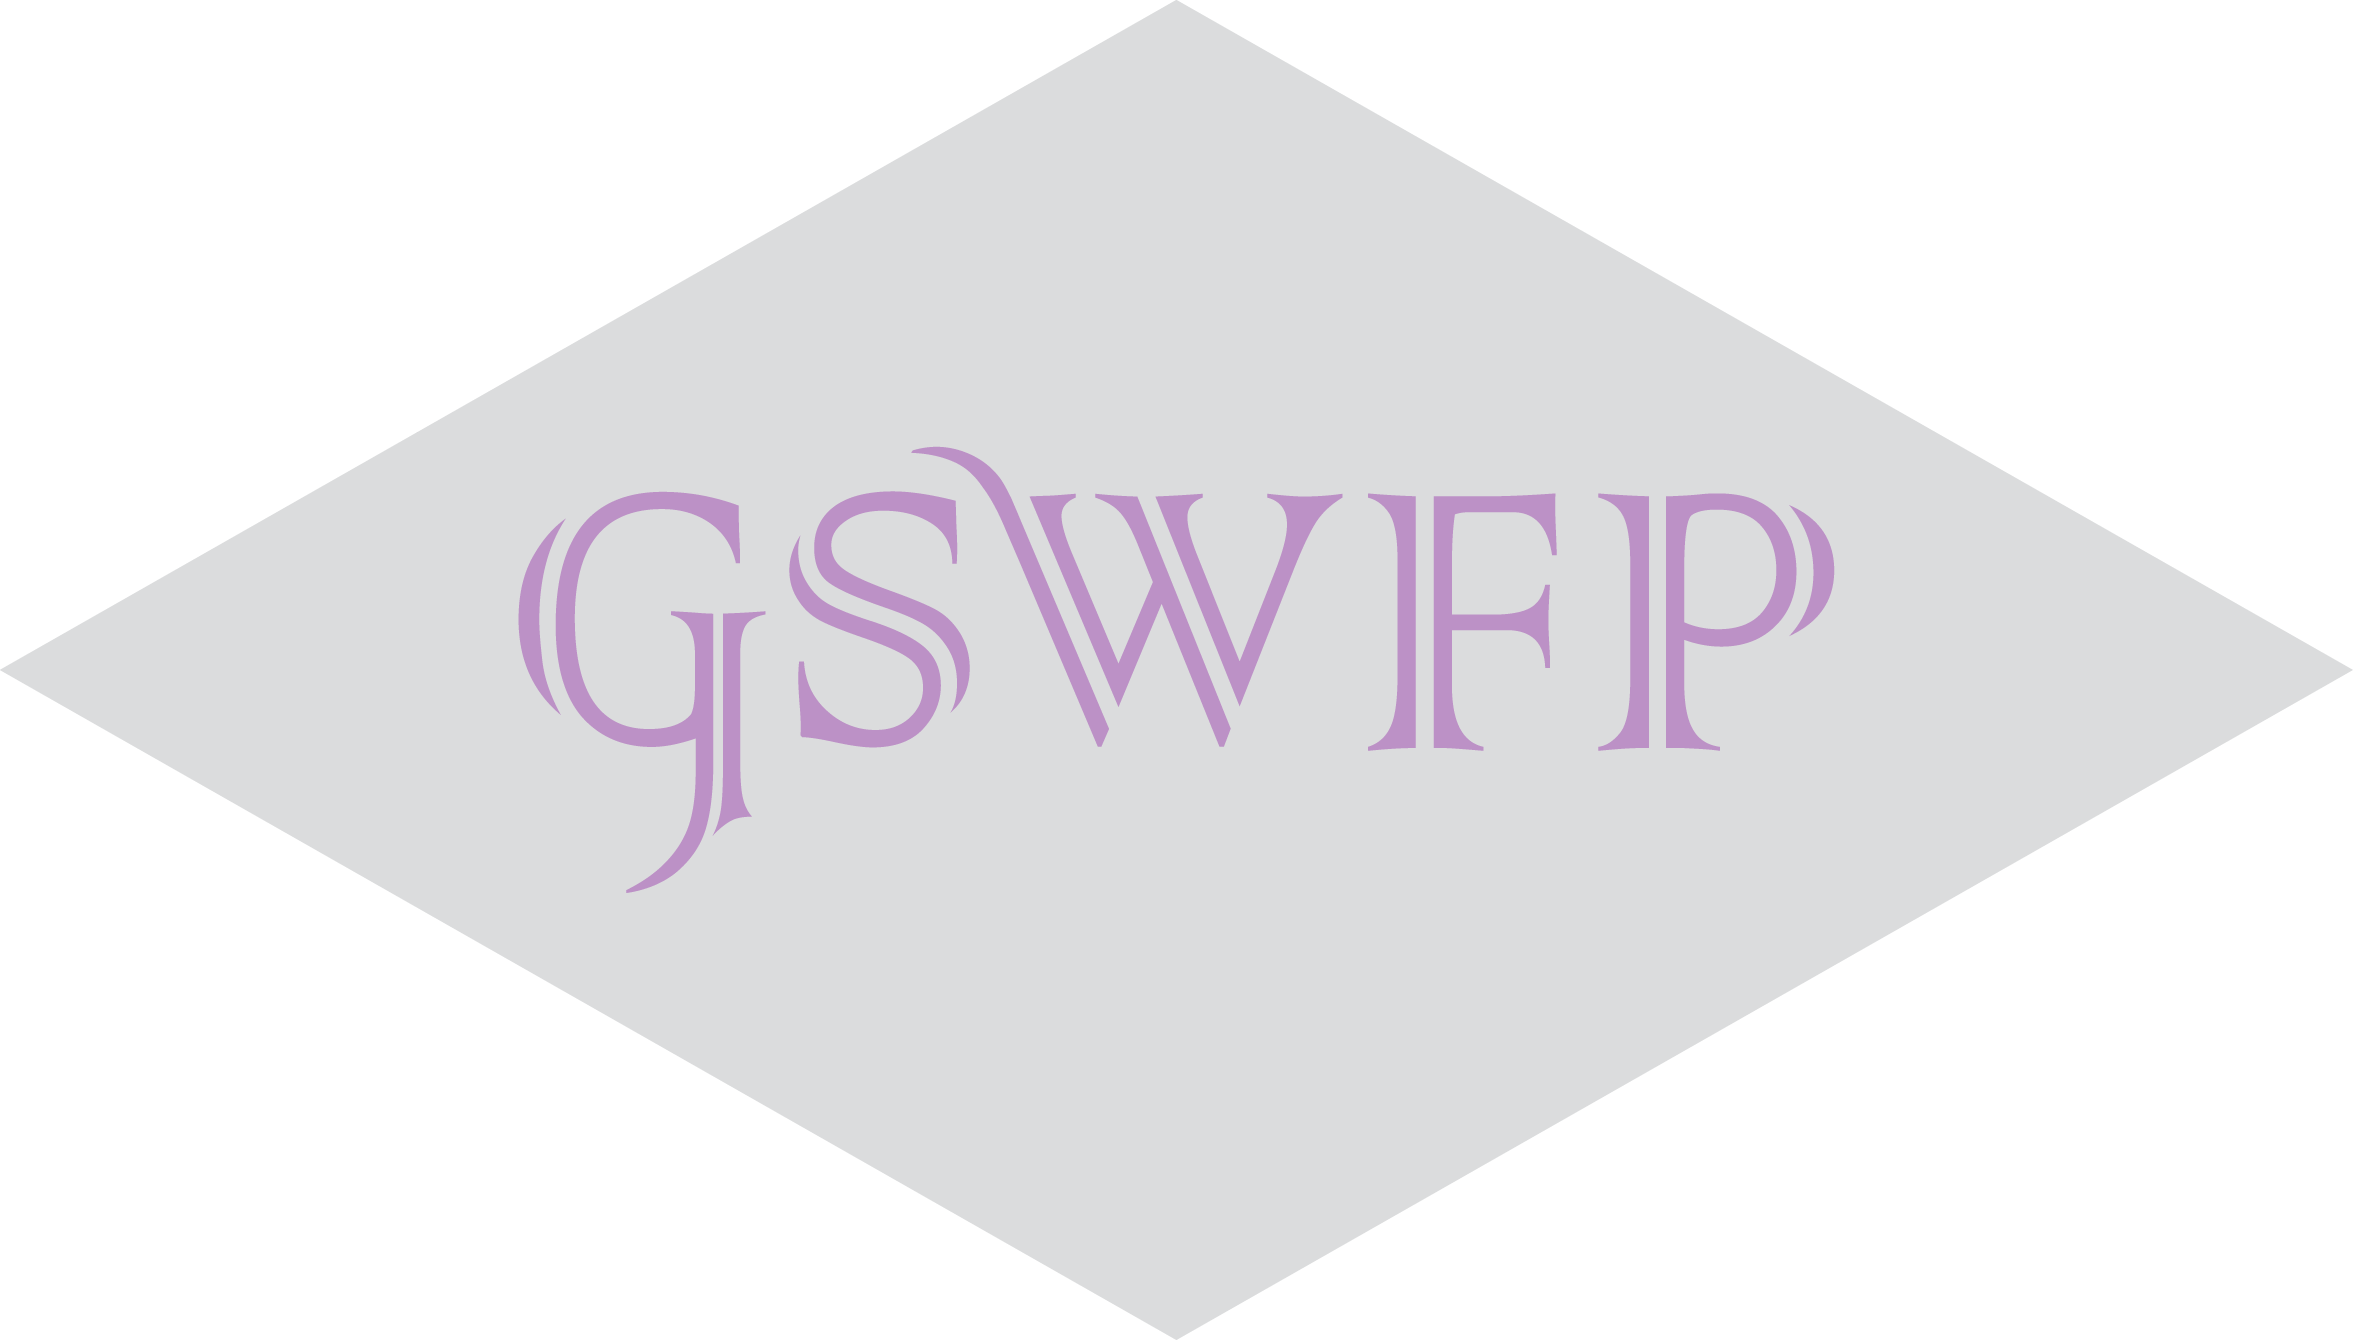 GSWFP Diamond Logo